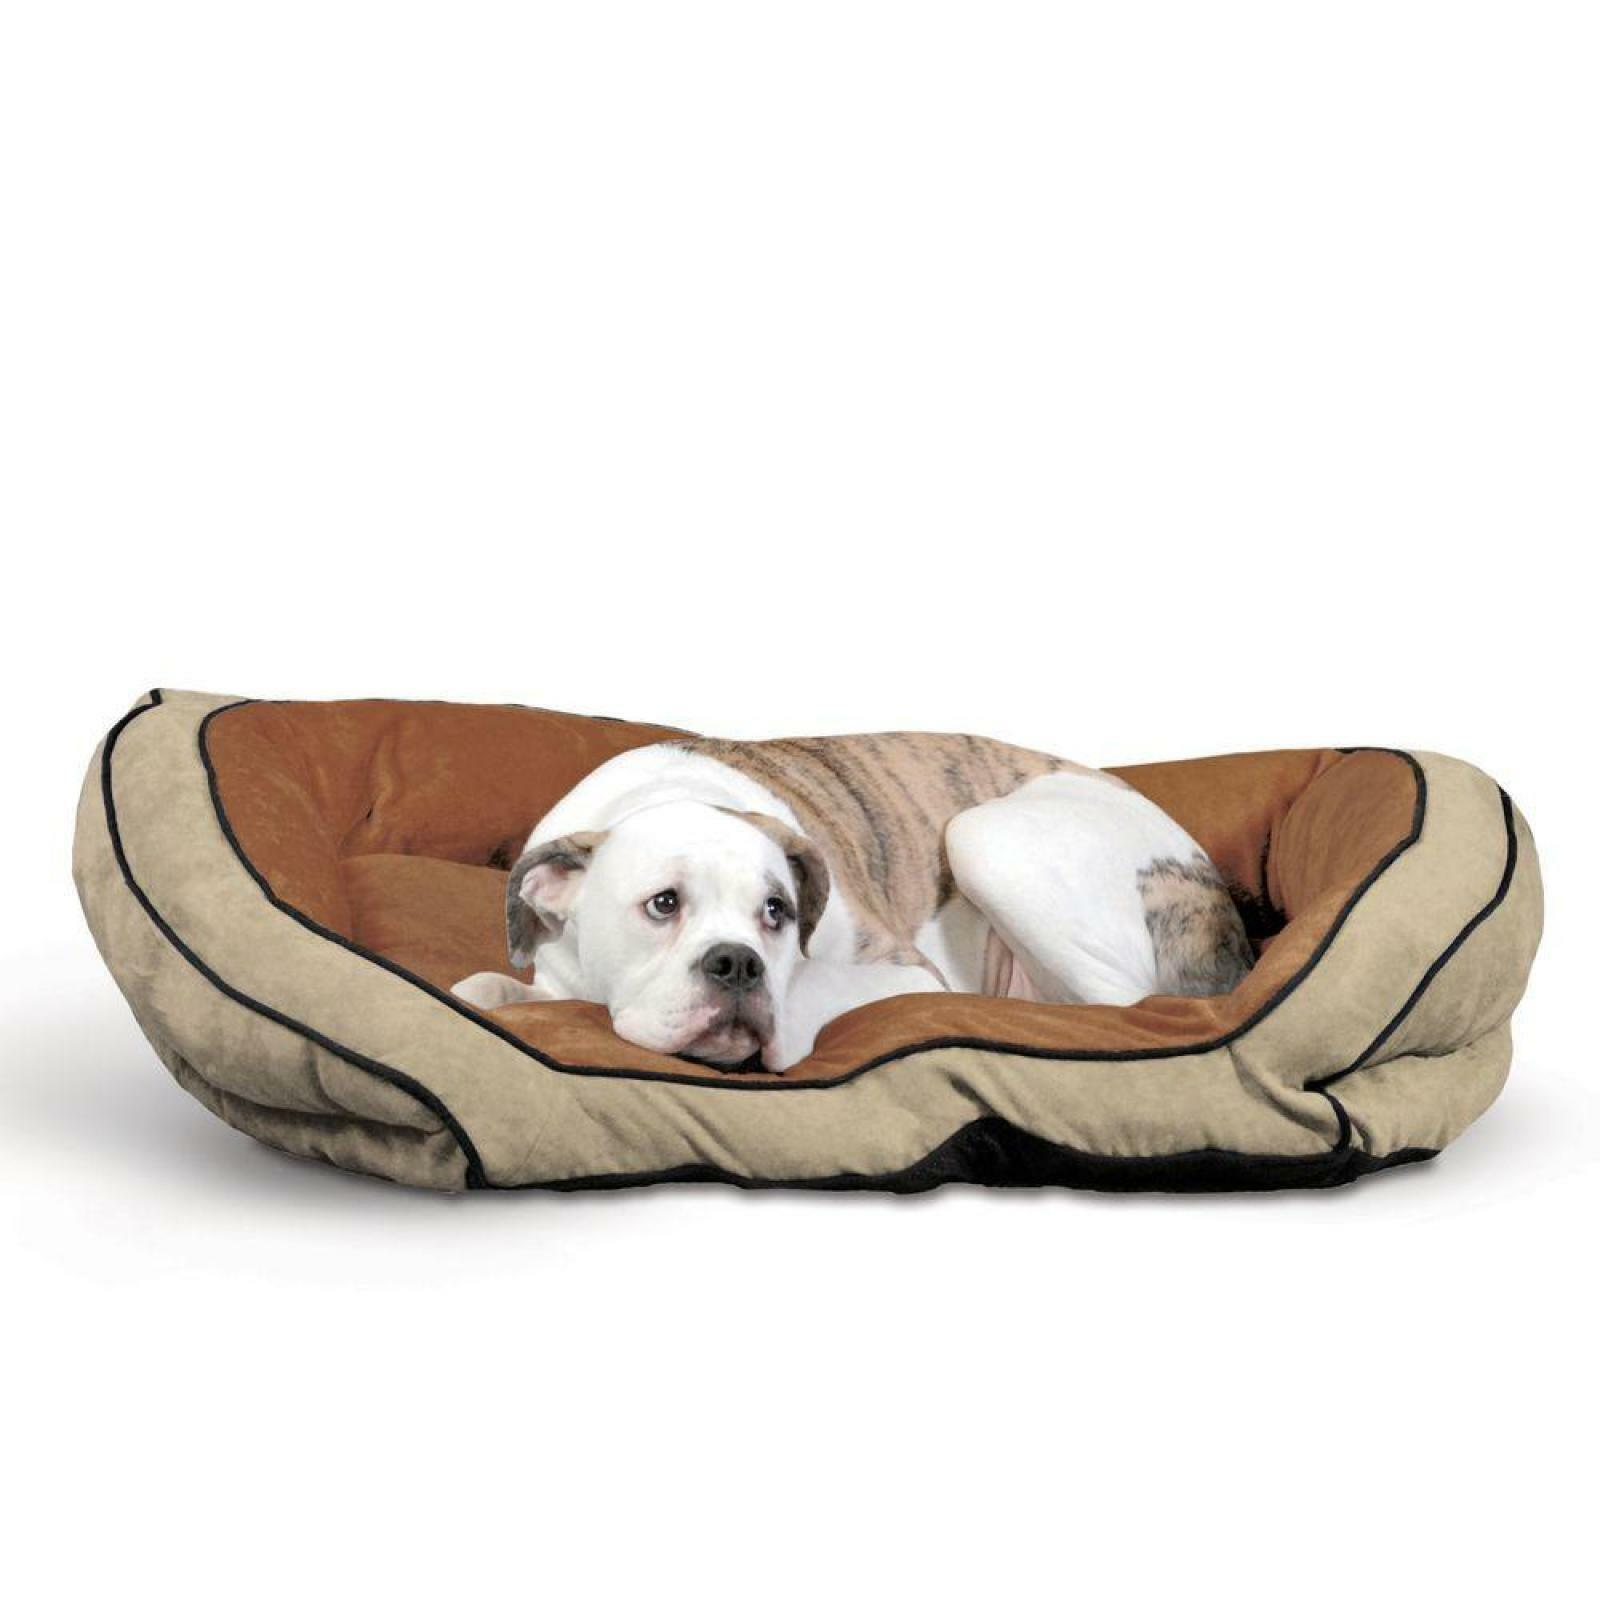 Dog Sofa Bed Large Pet Tufted Cushion Soft Sleeper Bed Couch Micro-suede Premium